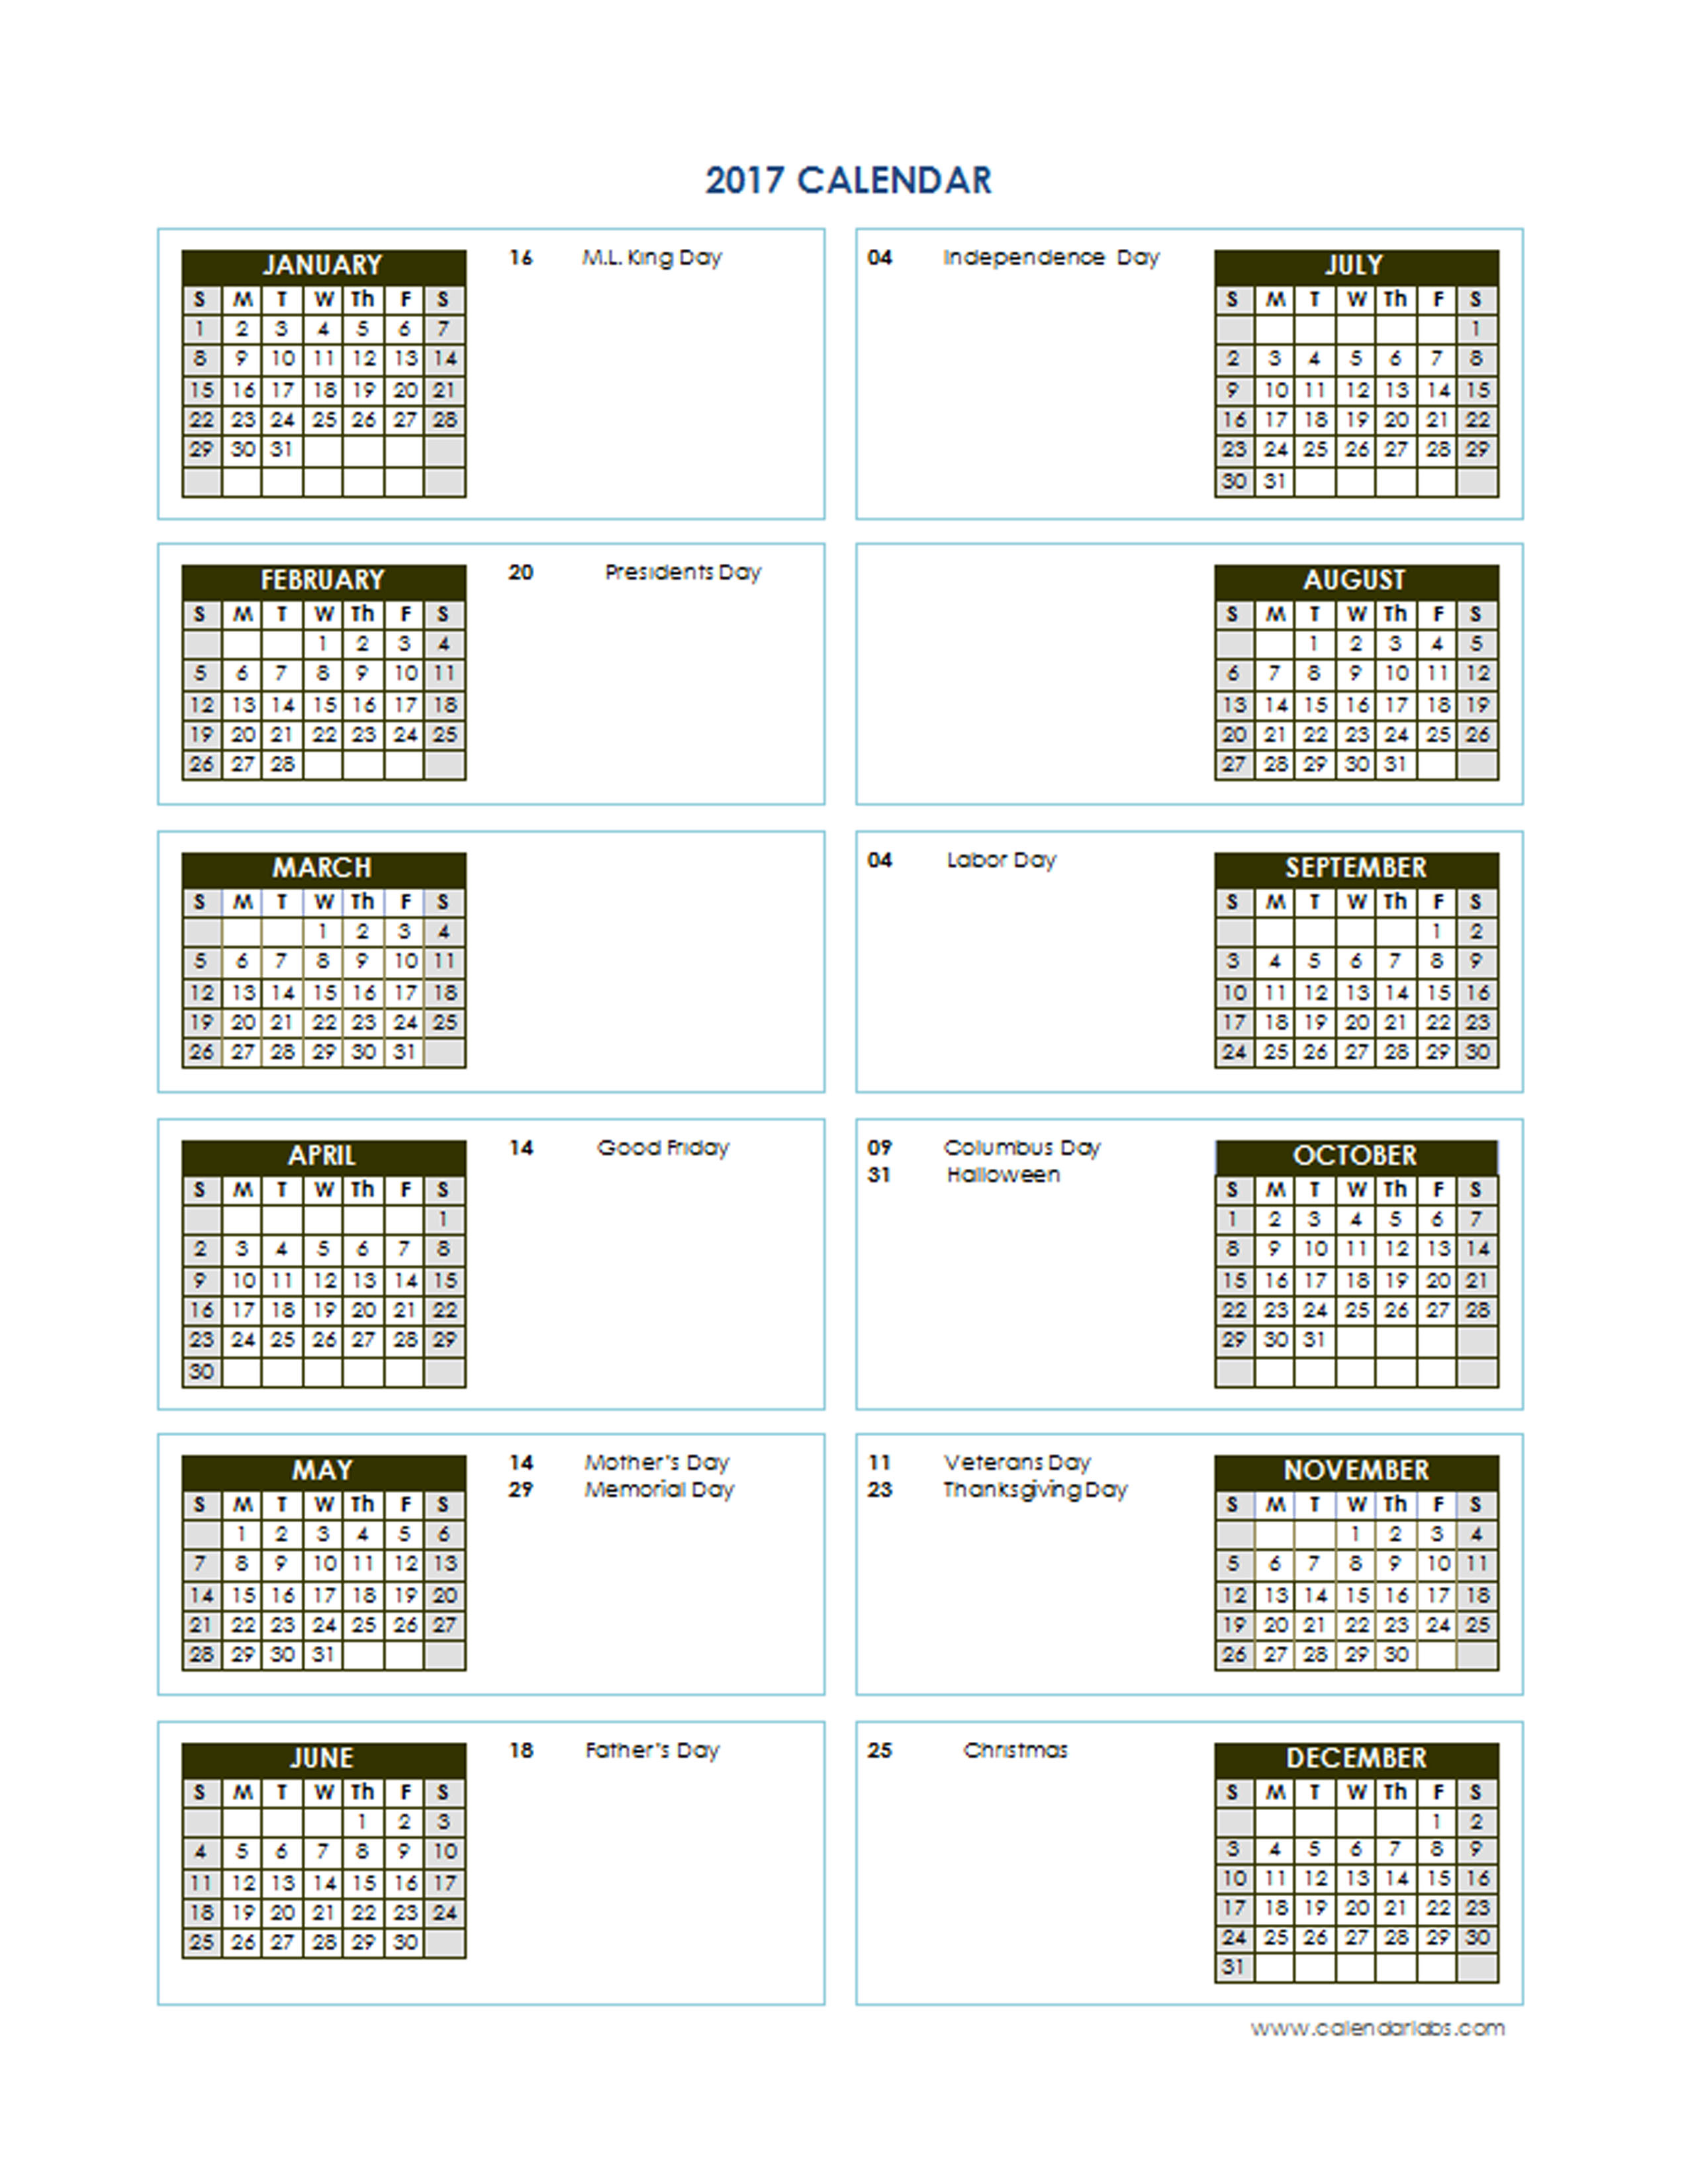 2017 calendar template with all holidays yearly calendar 2017